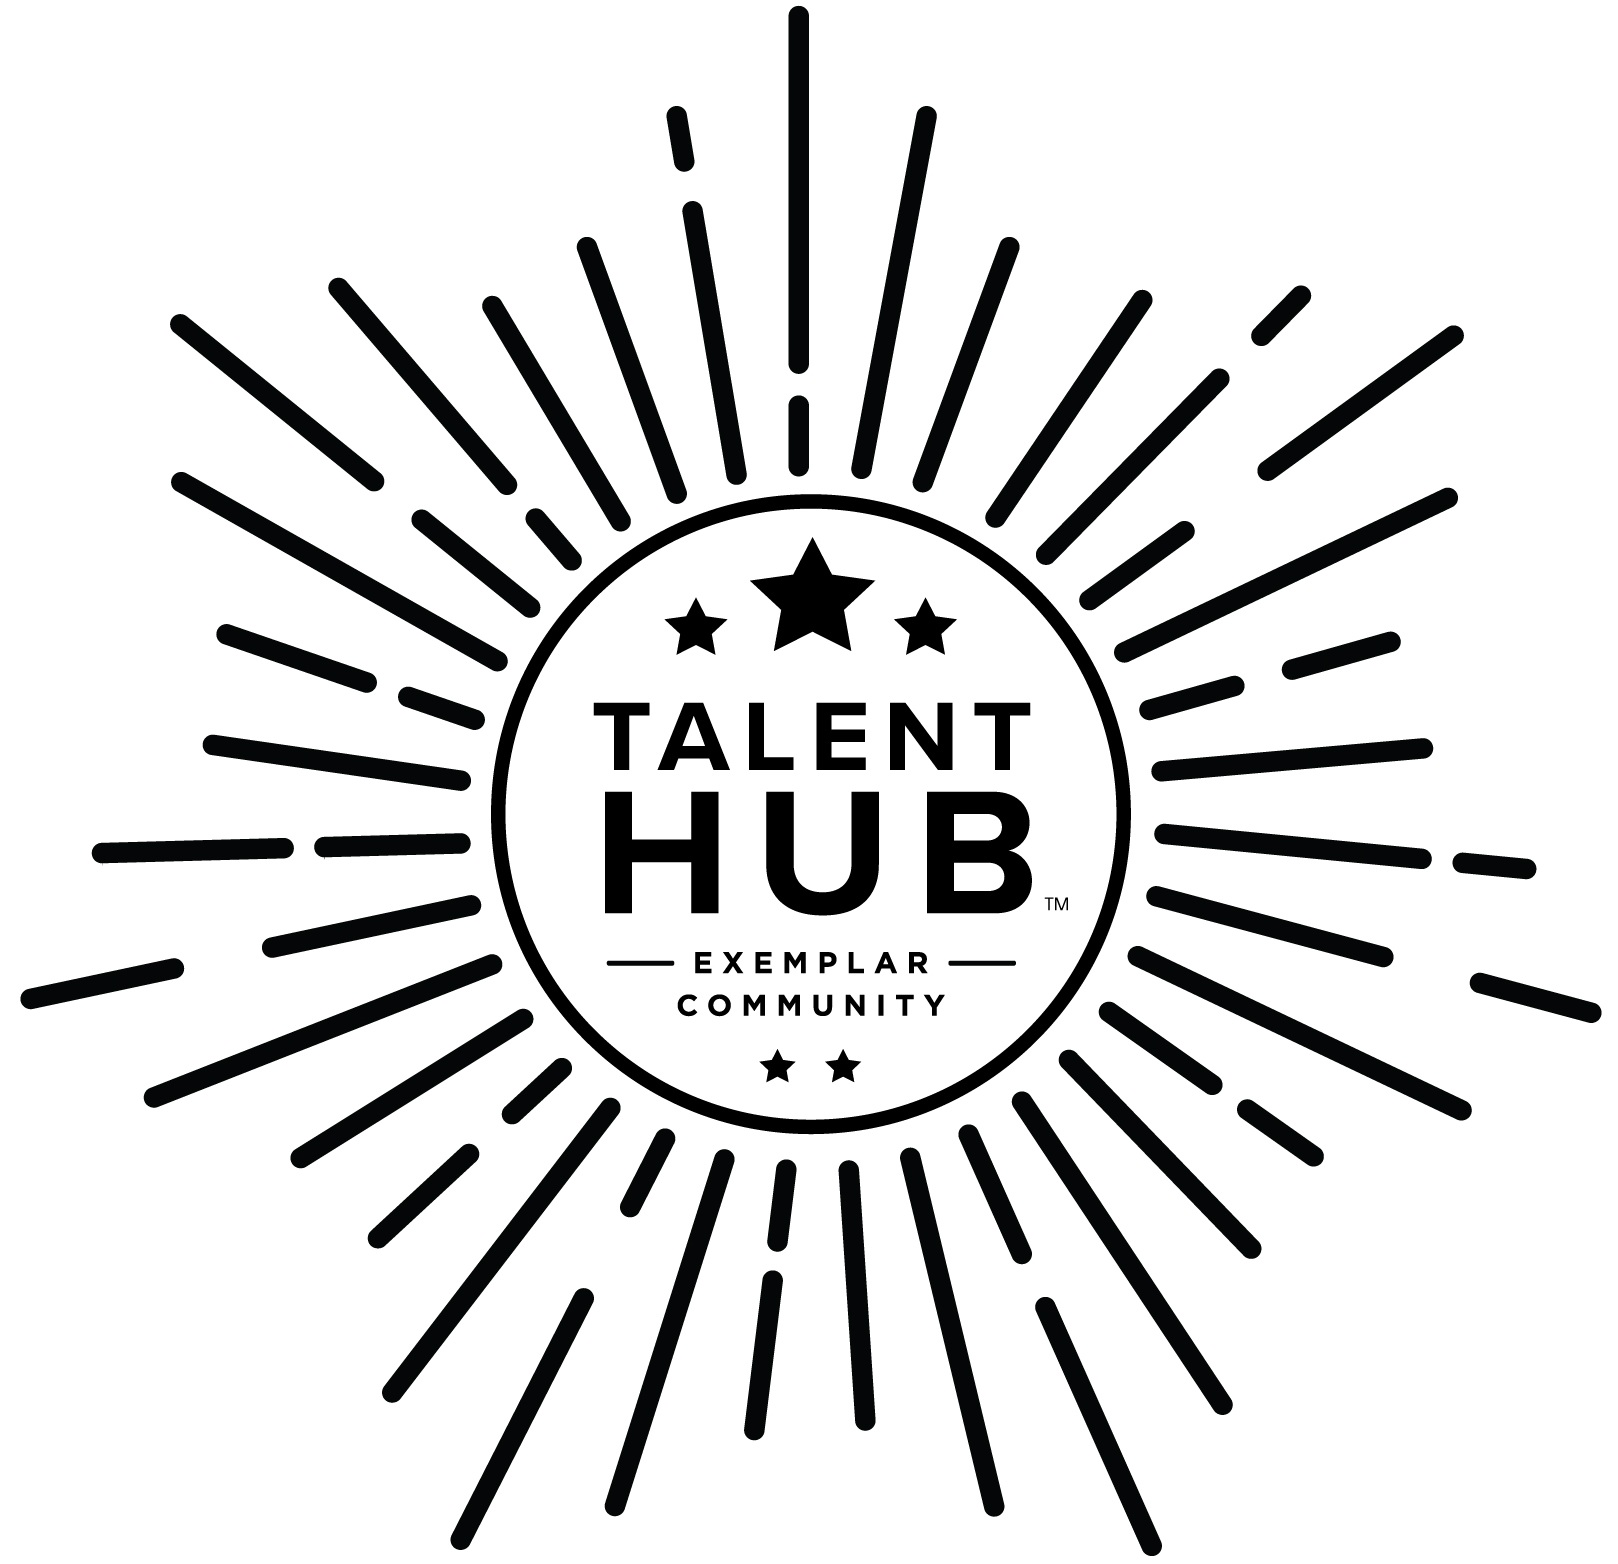 Talent+Hub+Certification+Mark.jpg